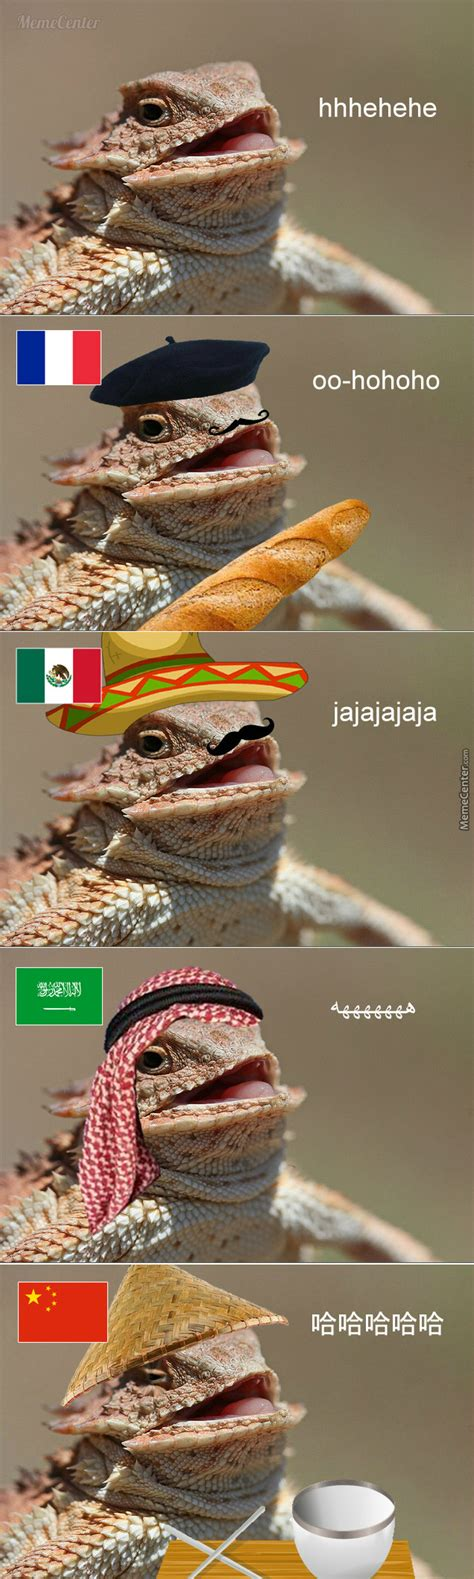 Laughing Lizard Meme - laughing lizard in different countries by bakoahmed meme